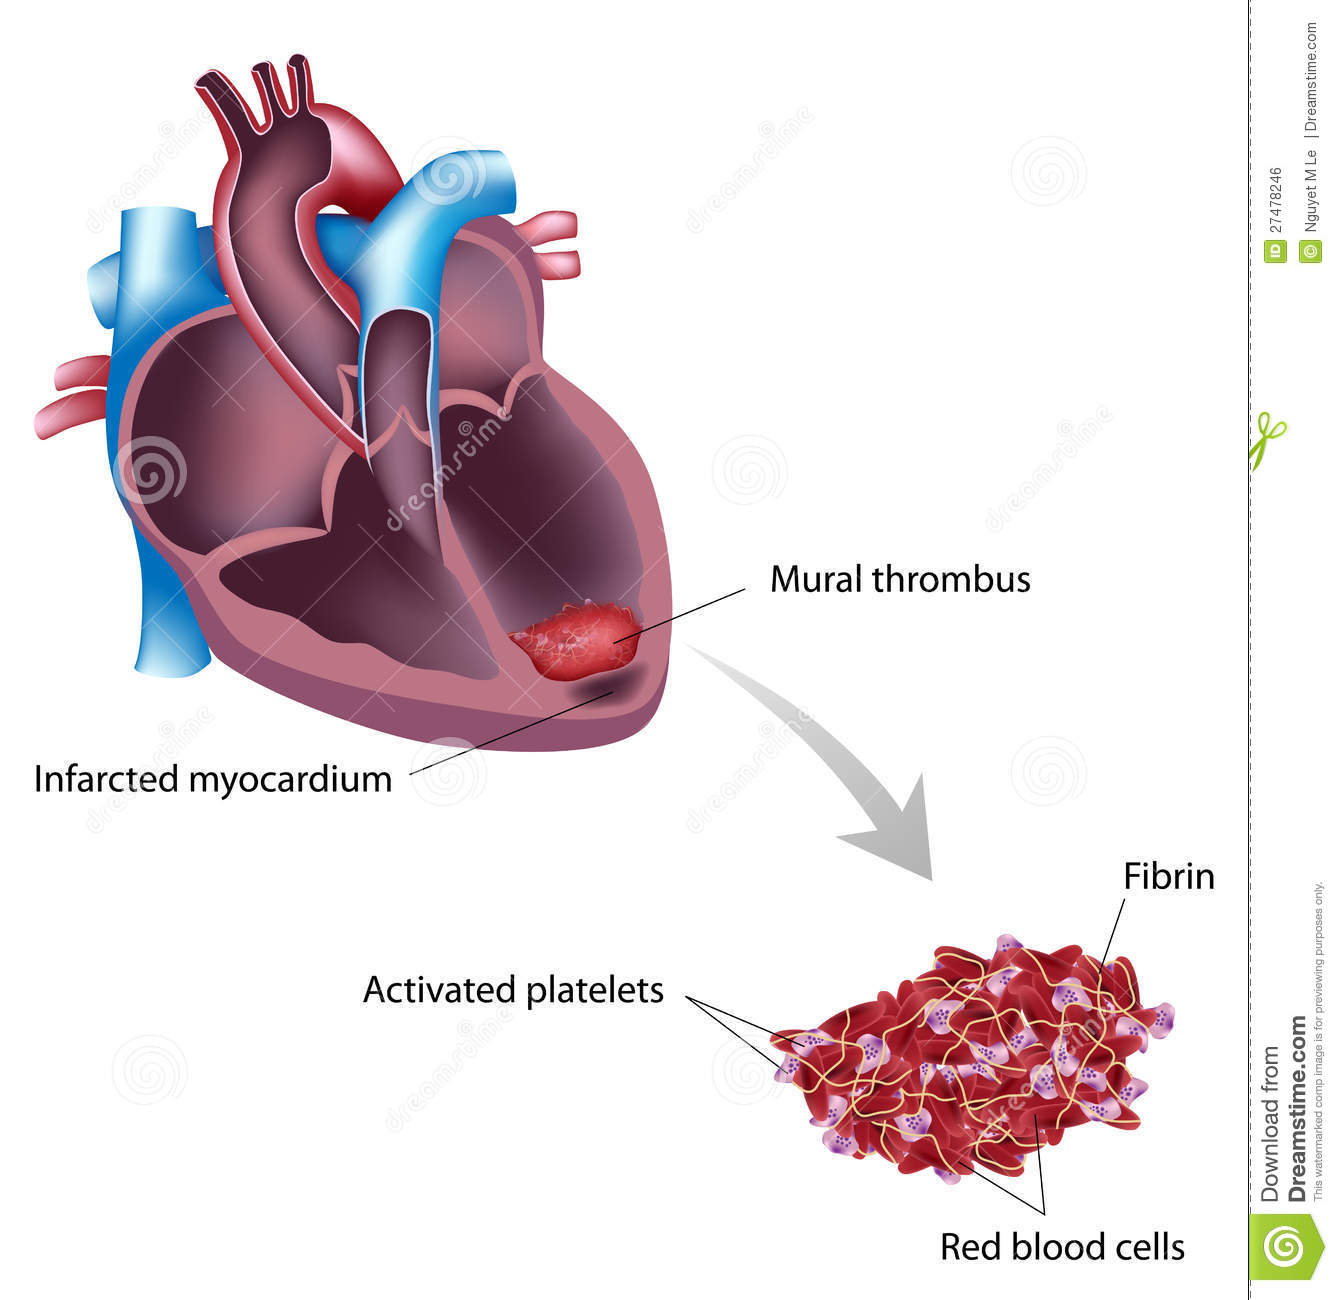 mural thrombus royalty free stock image image 27478246 ForMural Thrombosis